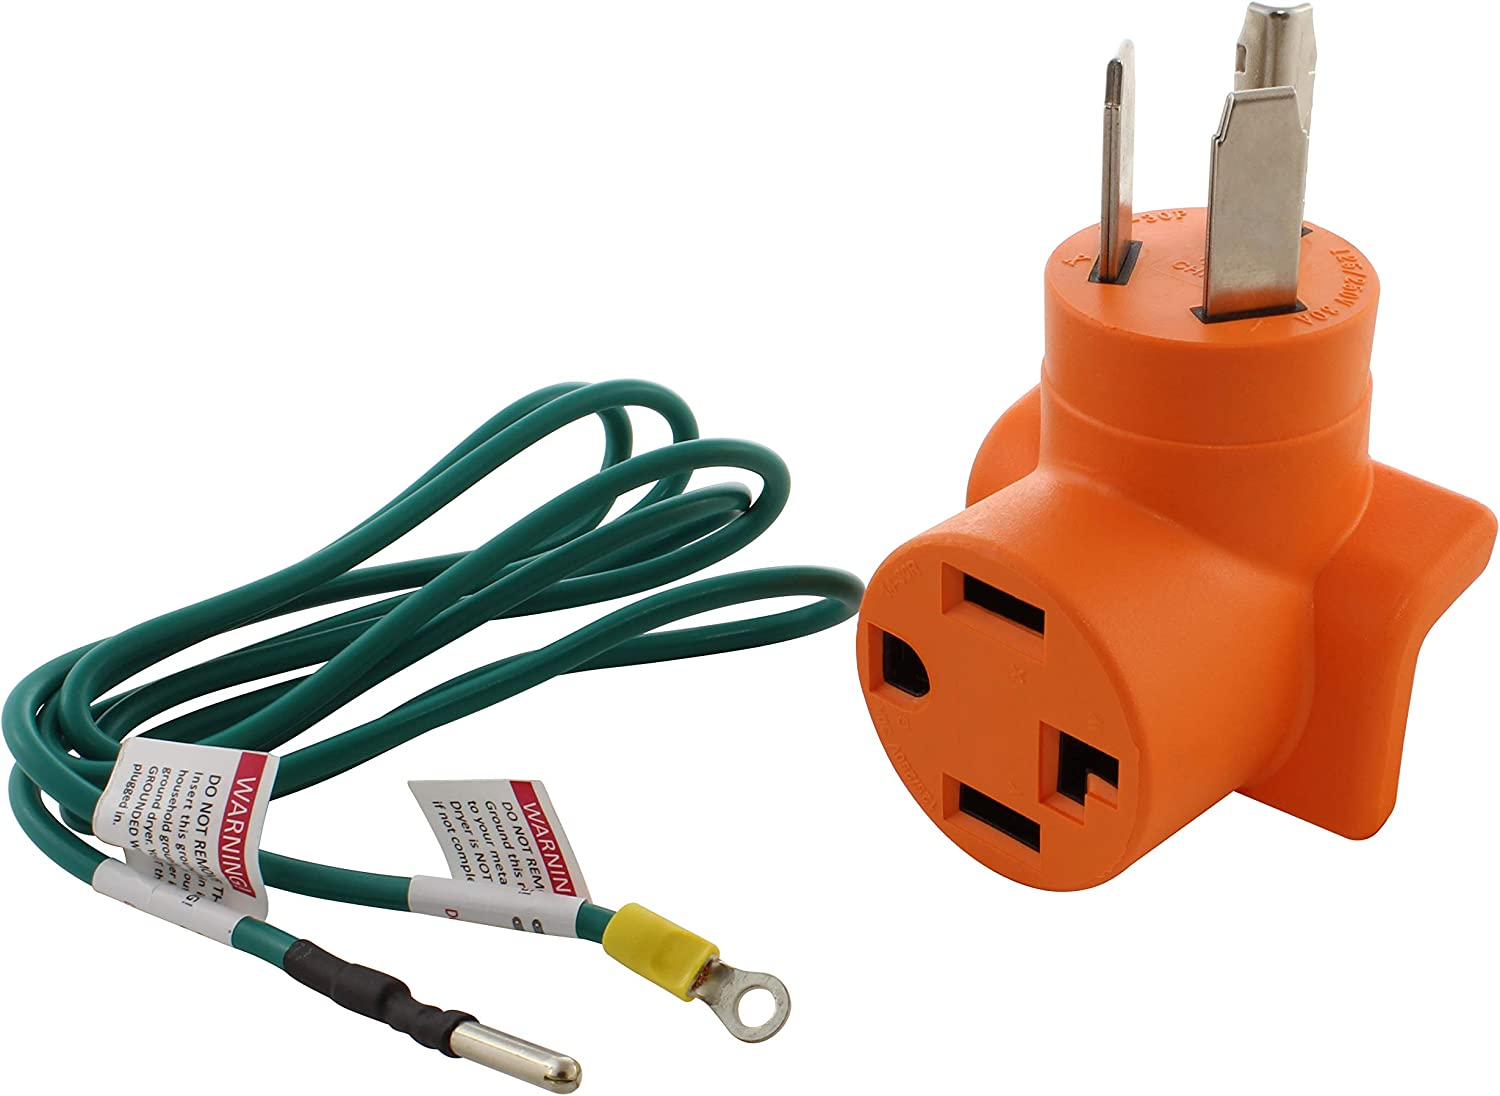 AC WORKS 30 Amp 3-Prong Dryer Wall Outlet Adapter (To 4-Prong 30Amp Dryer Plug)